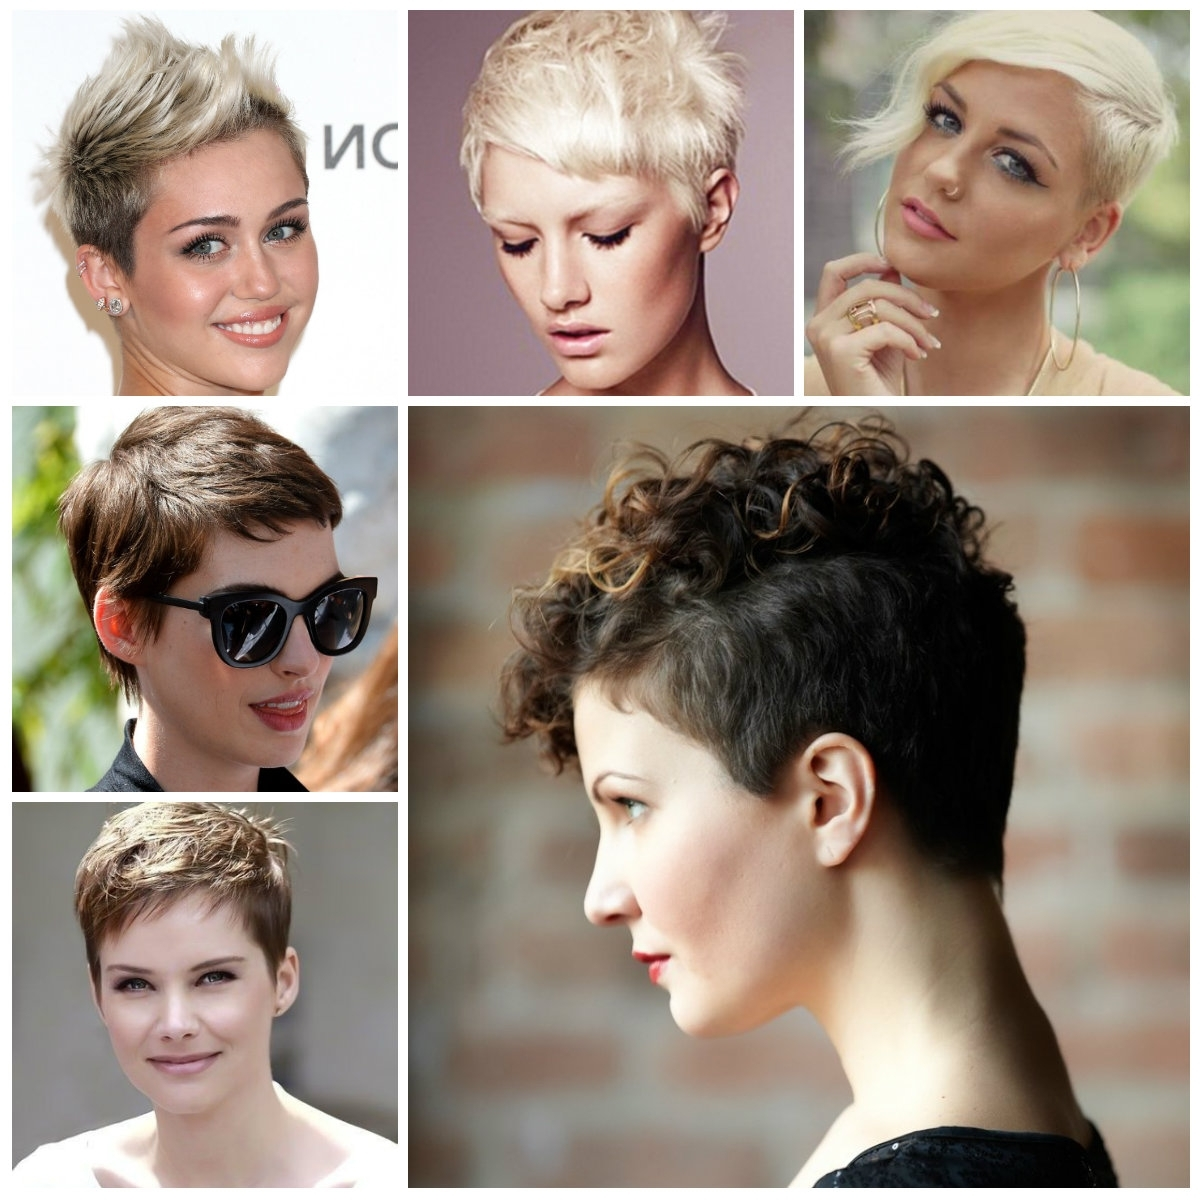 10 Trendy Pixie Haircuts For 2016 | Haircuts, Hairstyles 2017 And With Regard To Newest Easy Pixie Hairstyles (View 5 of 15)